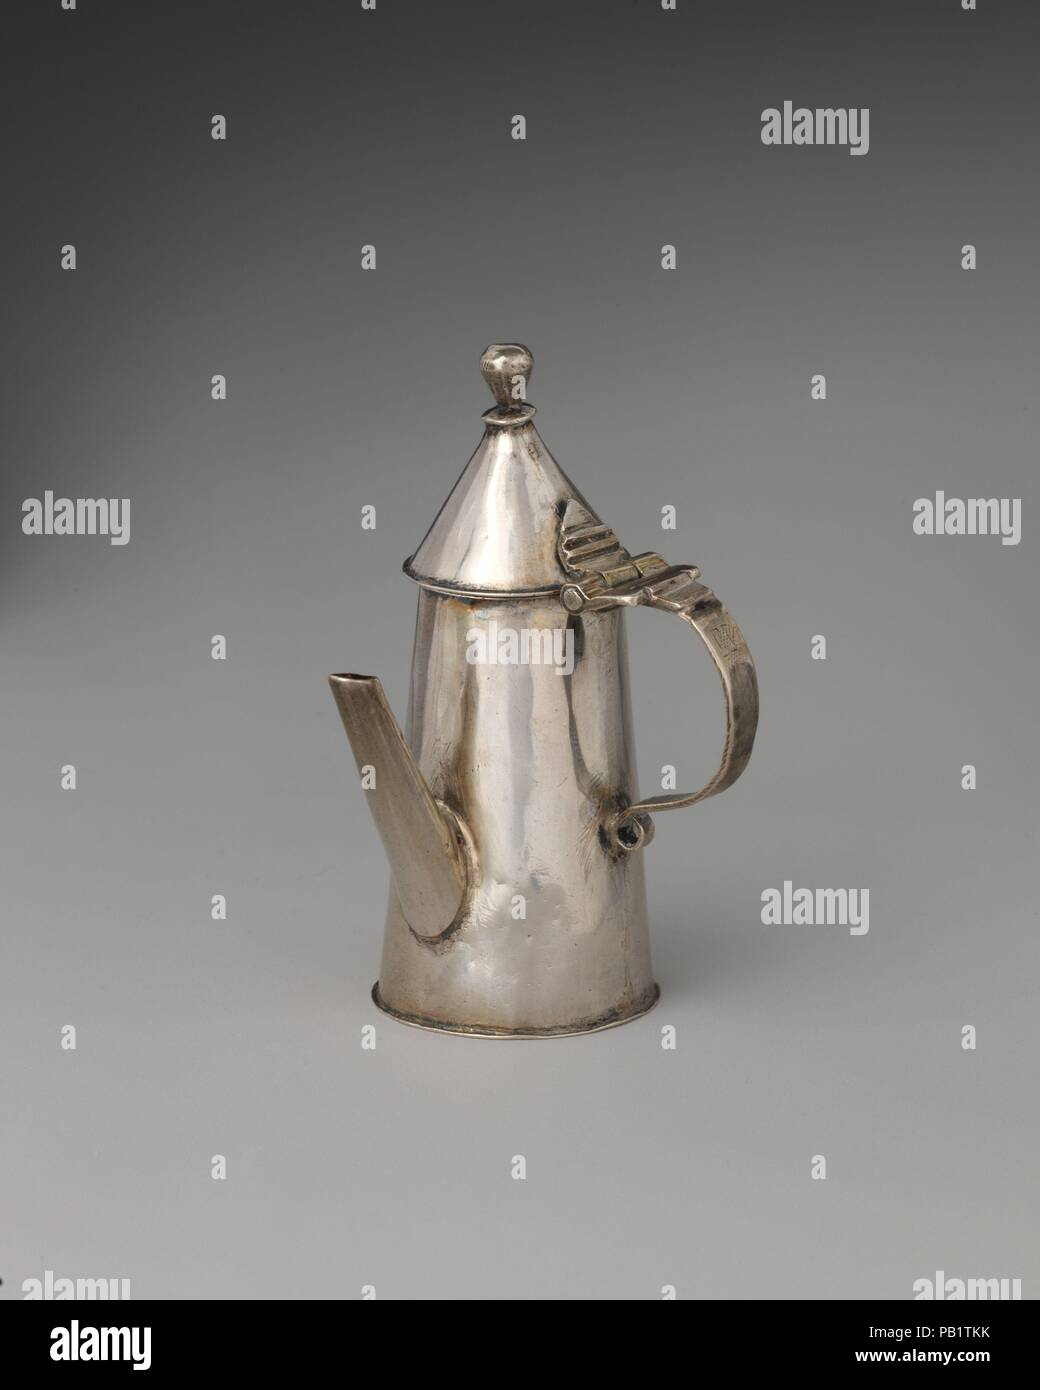 miniature coffeepot with hinged cover culture british london